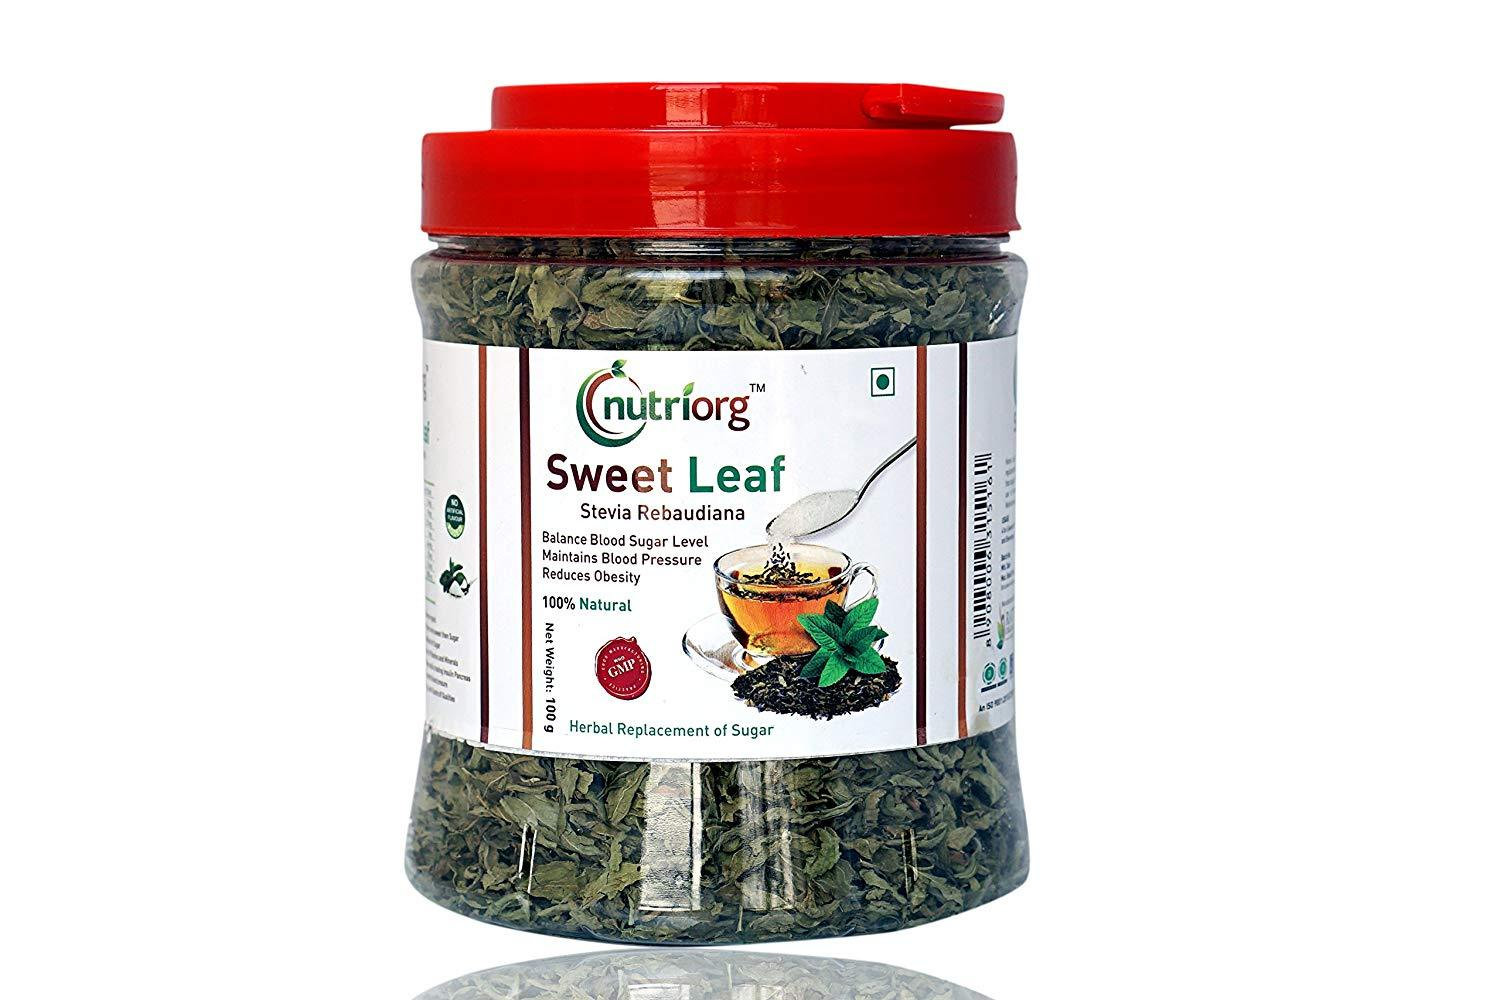 Nutriorg Sweet Leaf Slevia Rabaudiana - NutraC - Health & Nutrition Store